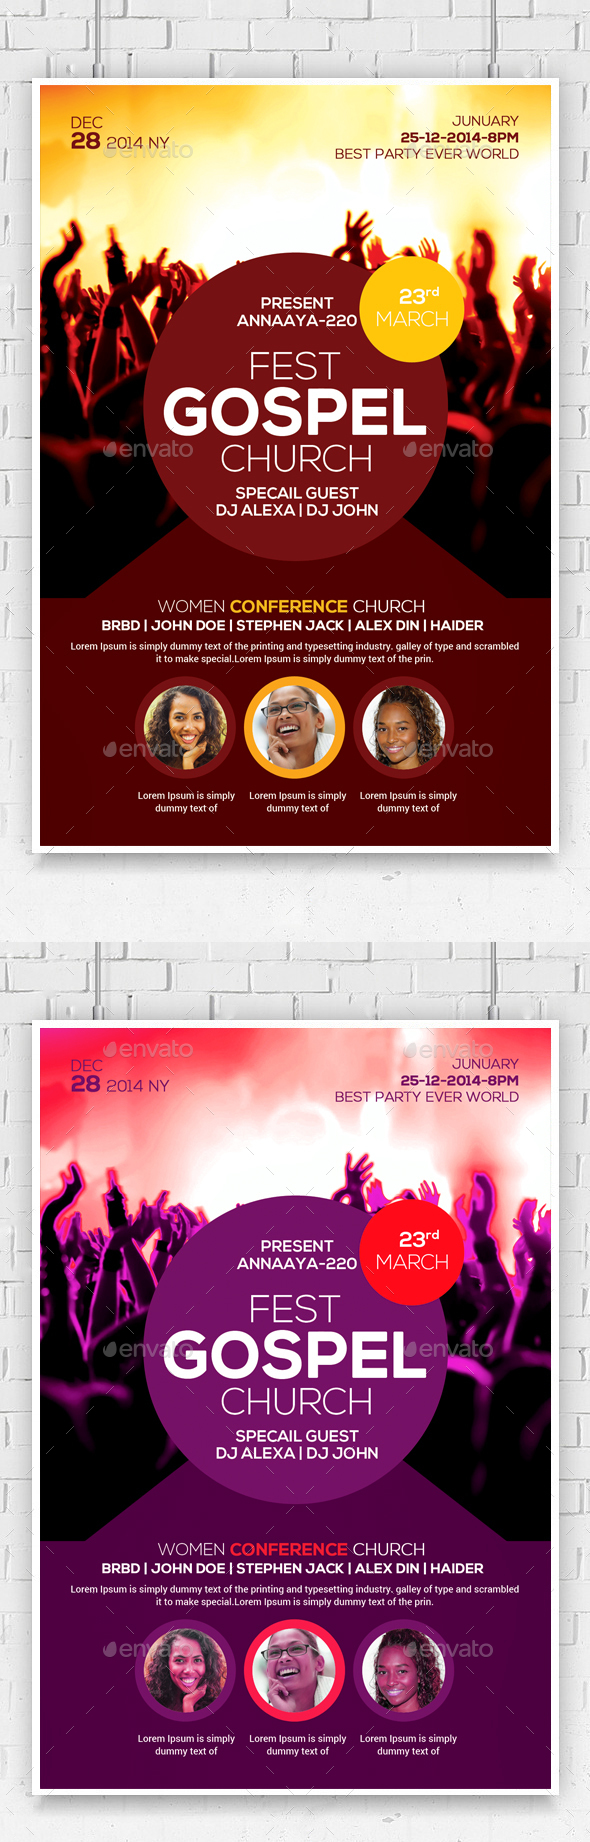 Gospel Fest Church Flyer Template - Church Flyers